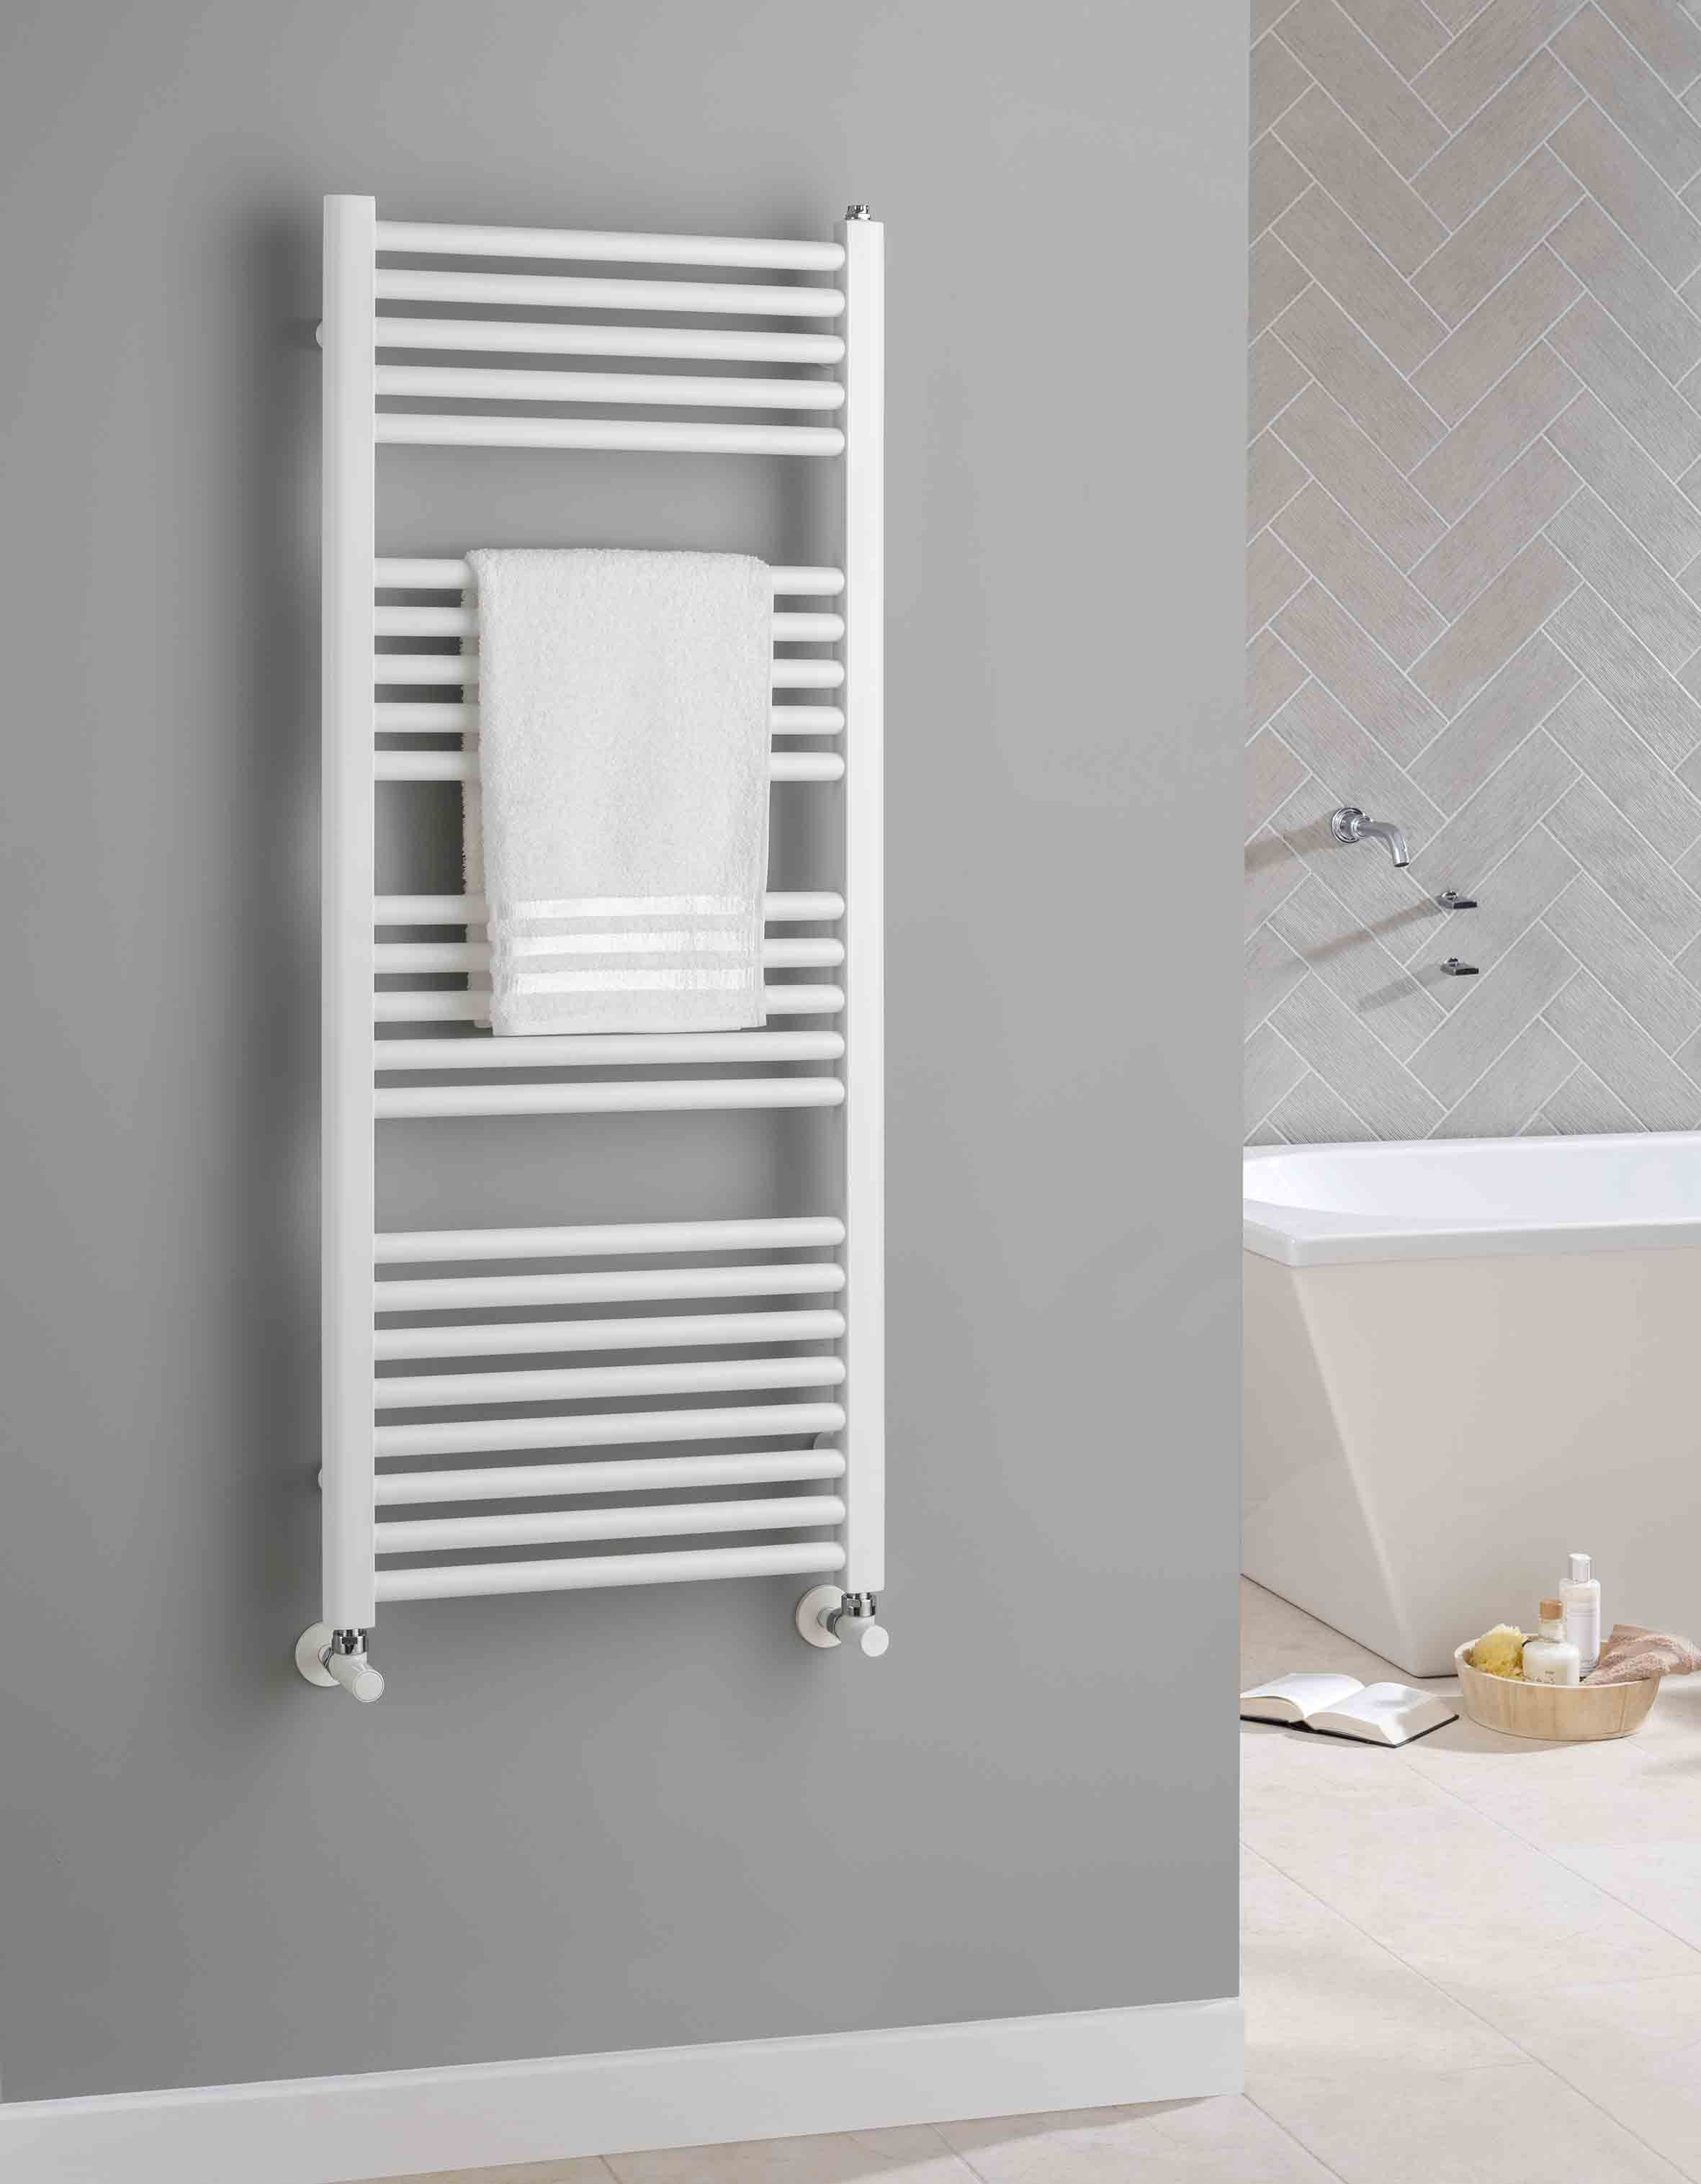 The Radiator Company Lupin White Heated Towel Rail Is The Popular Choice For A Simple Classic Ladder Rail With 40 Heated Towel Rail Radiator Company Towel Rail